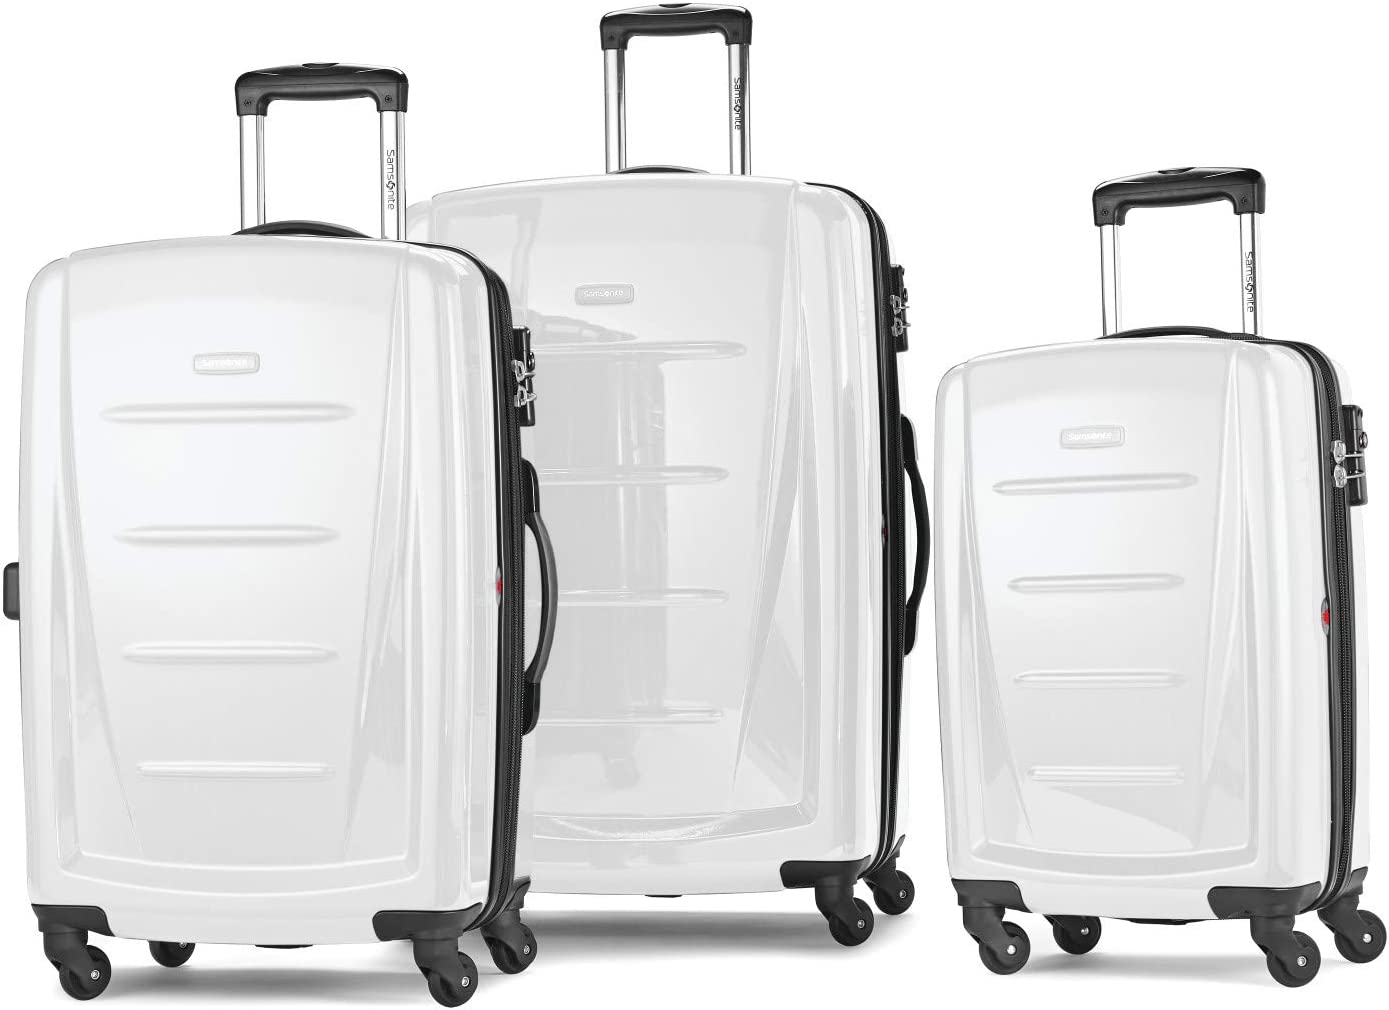 Samsonite Winfield 2 Hardside Expandable Luggage with Spinner Wheels, Brushed White, 3-Piece Set (20/24/28)